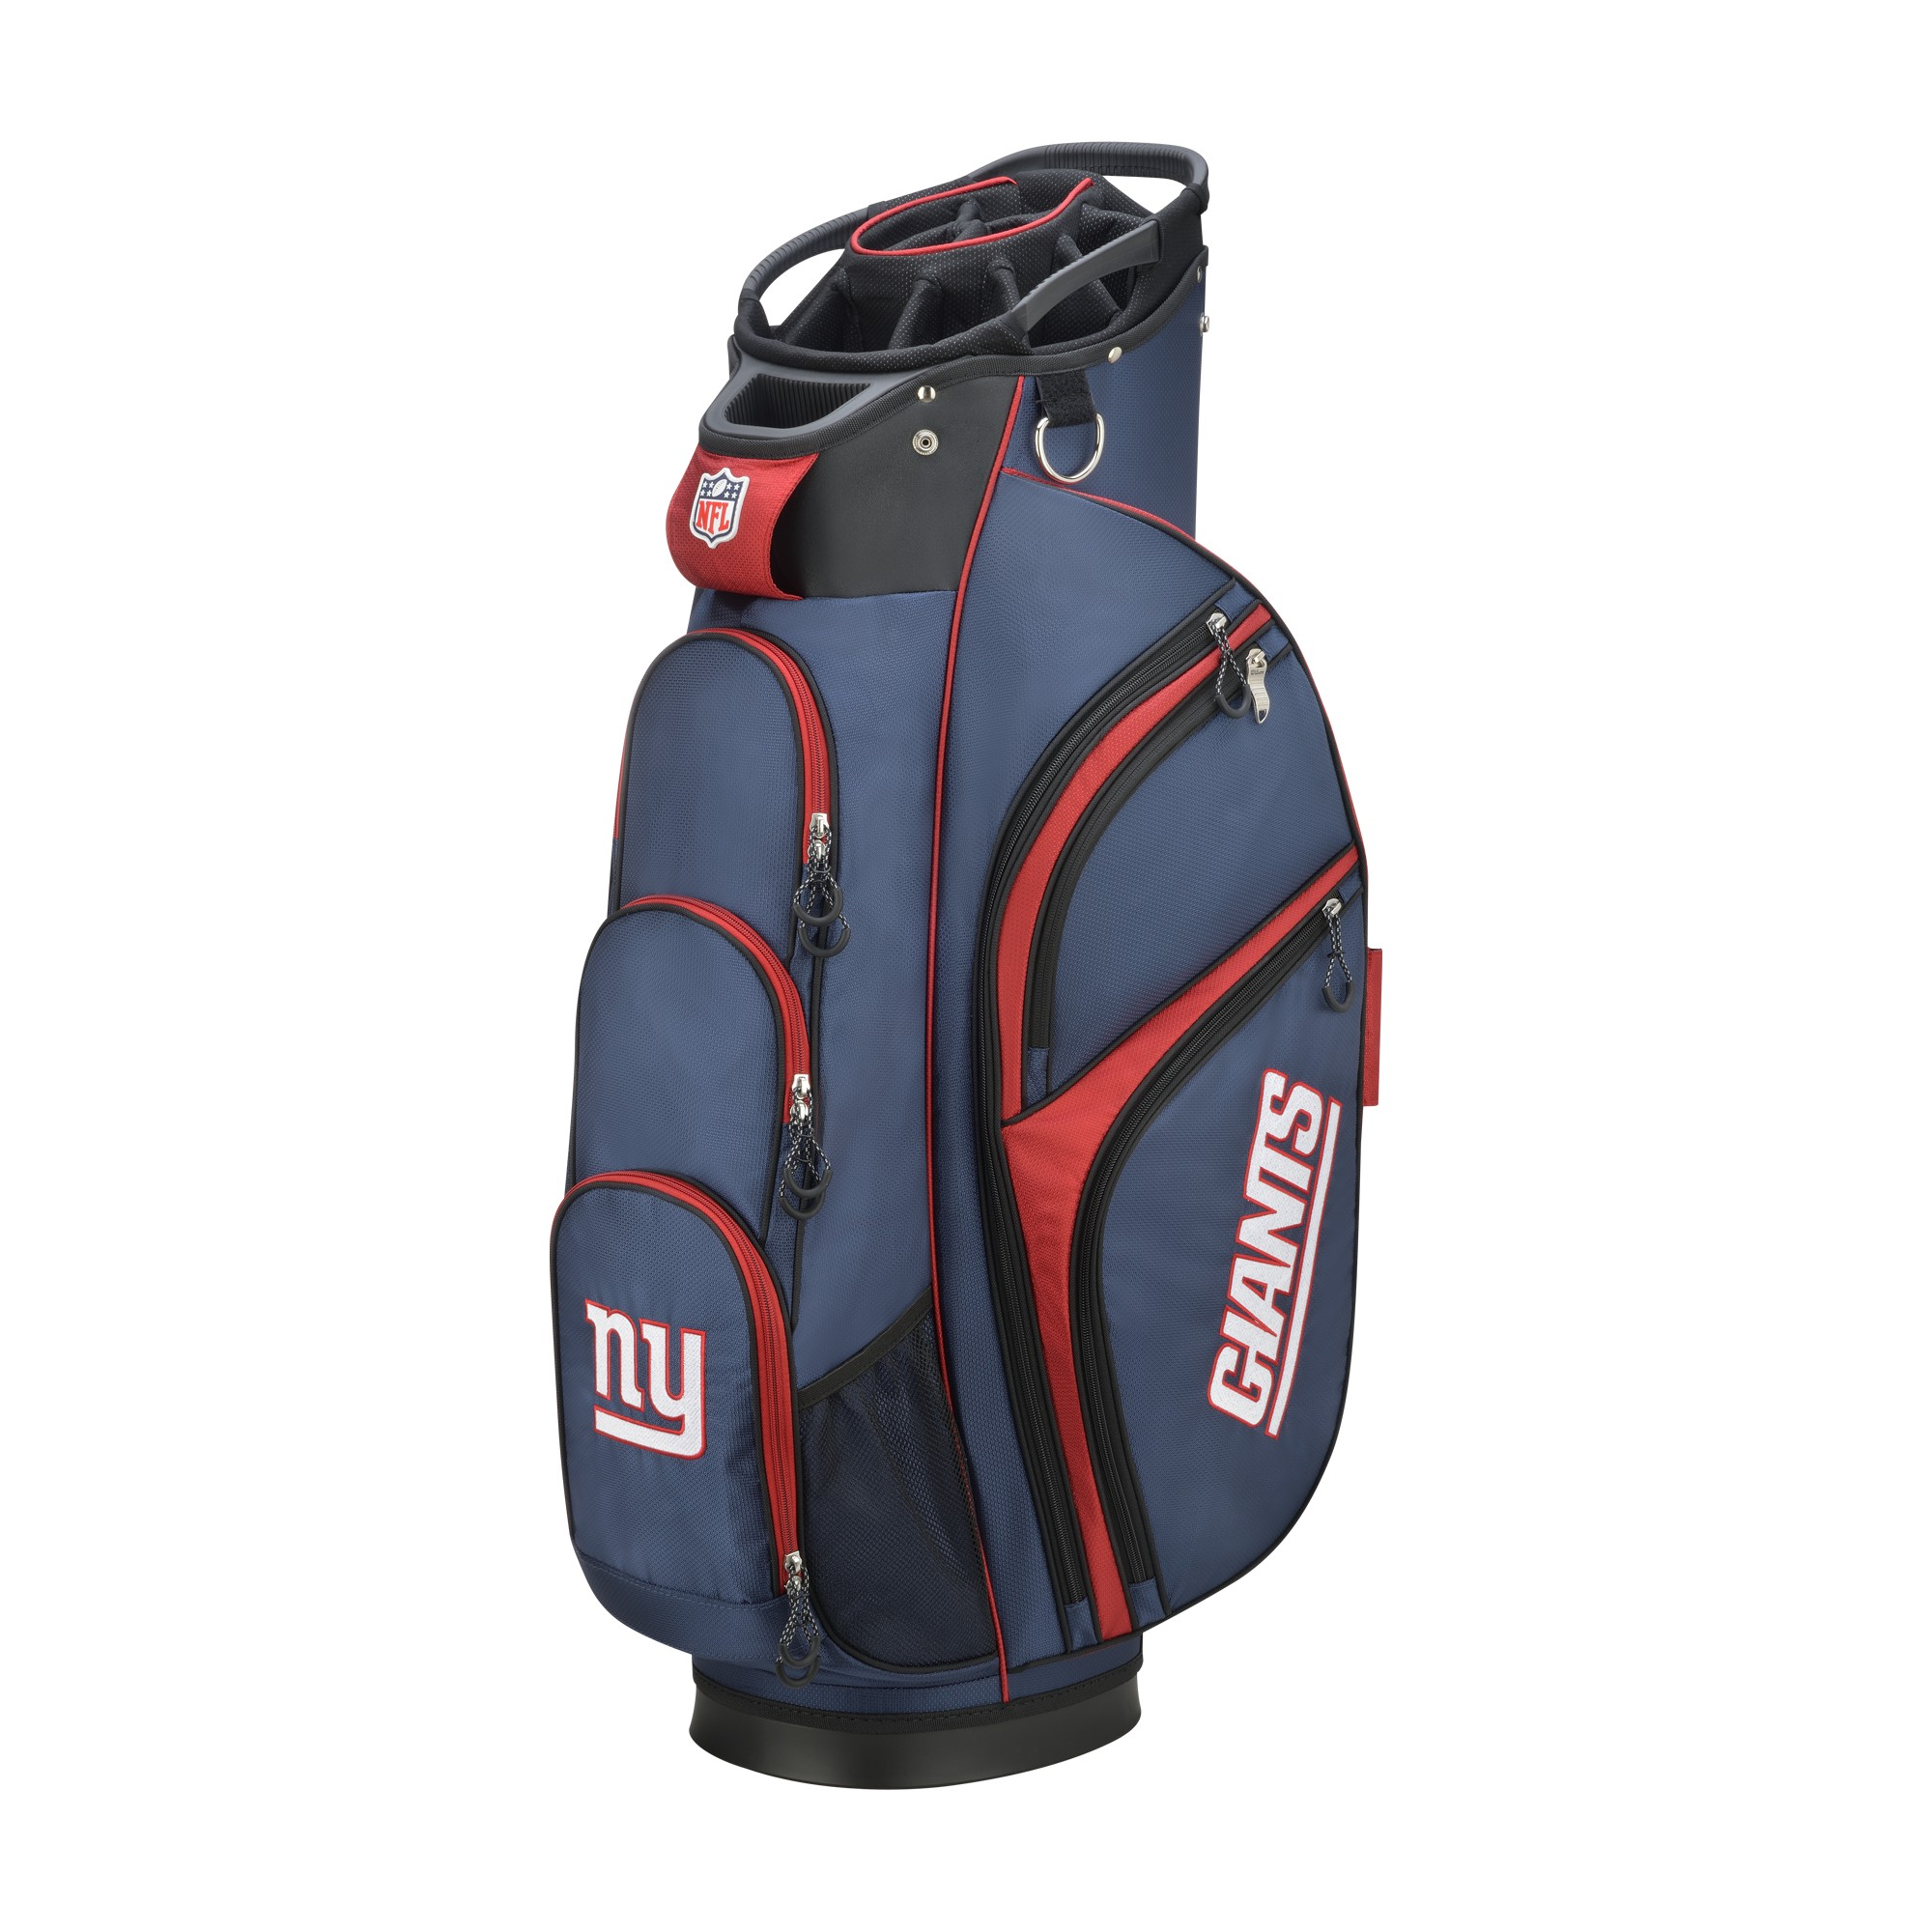 New York Giants NFL Golf Equipment - golf cart bag